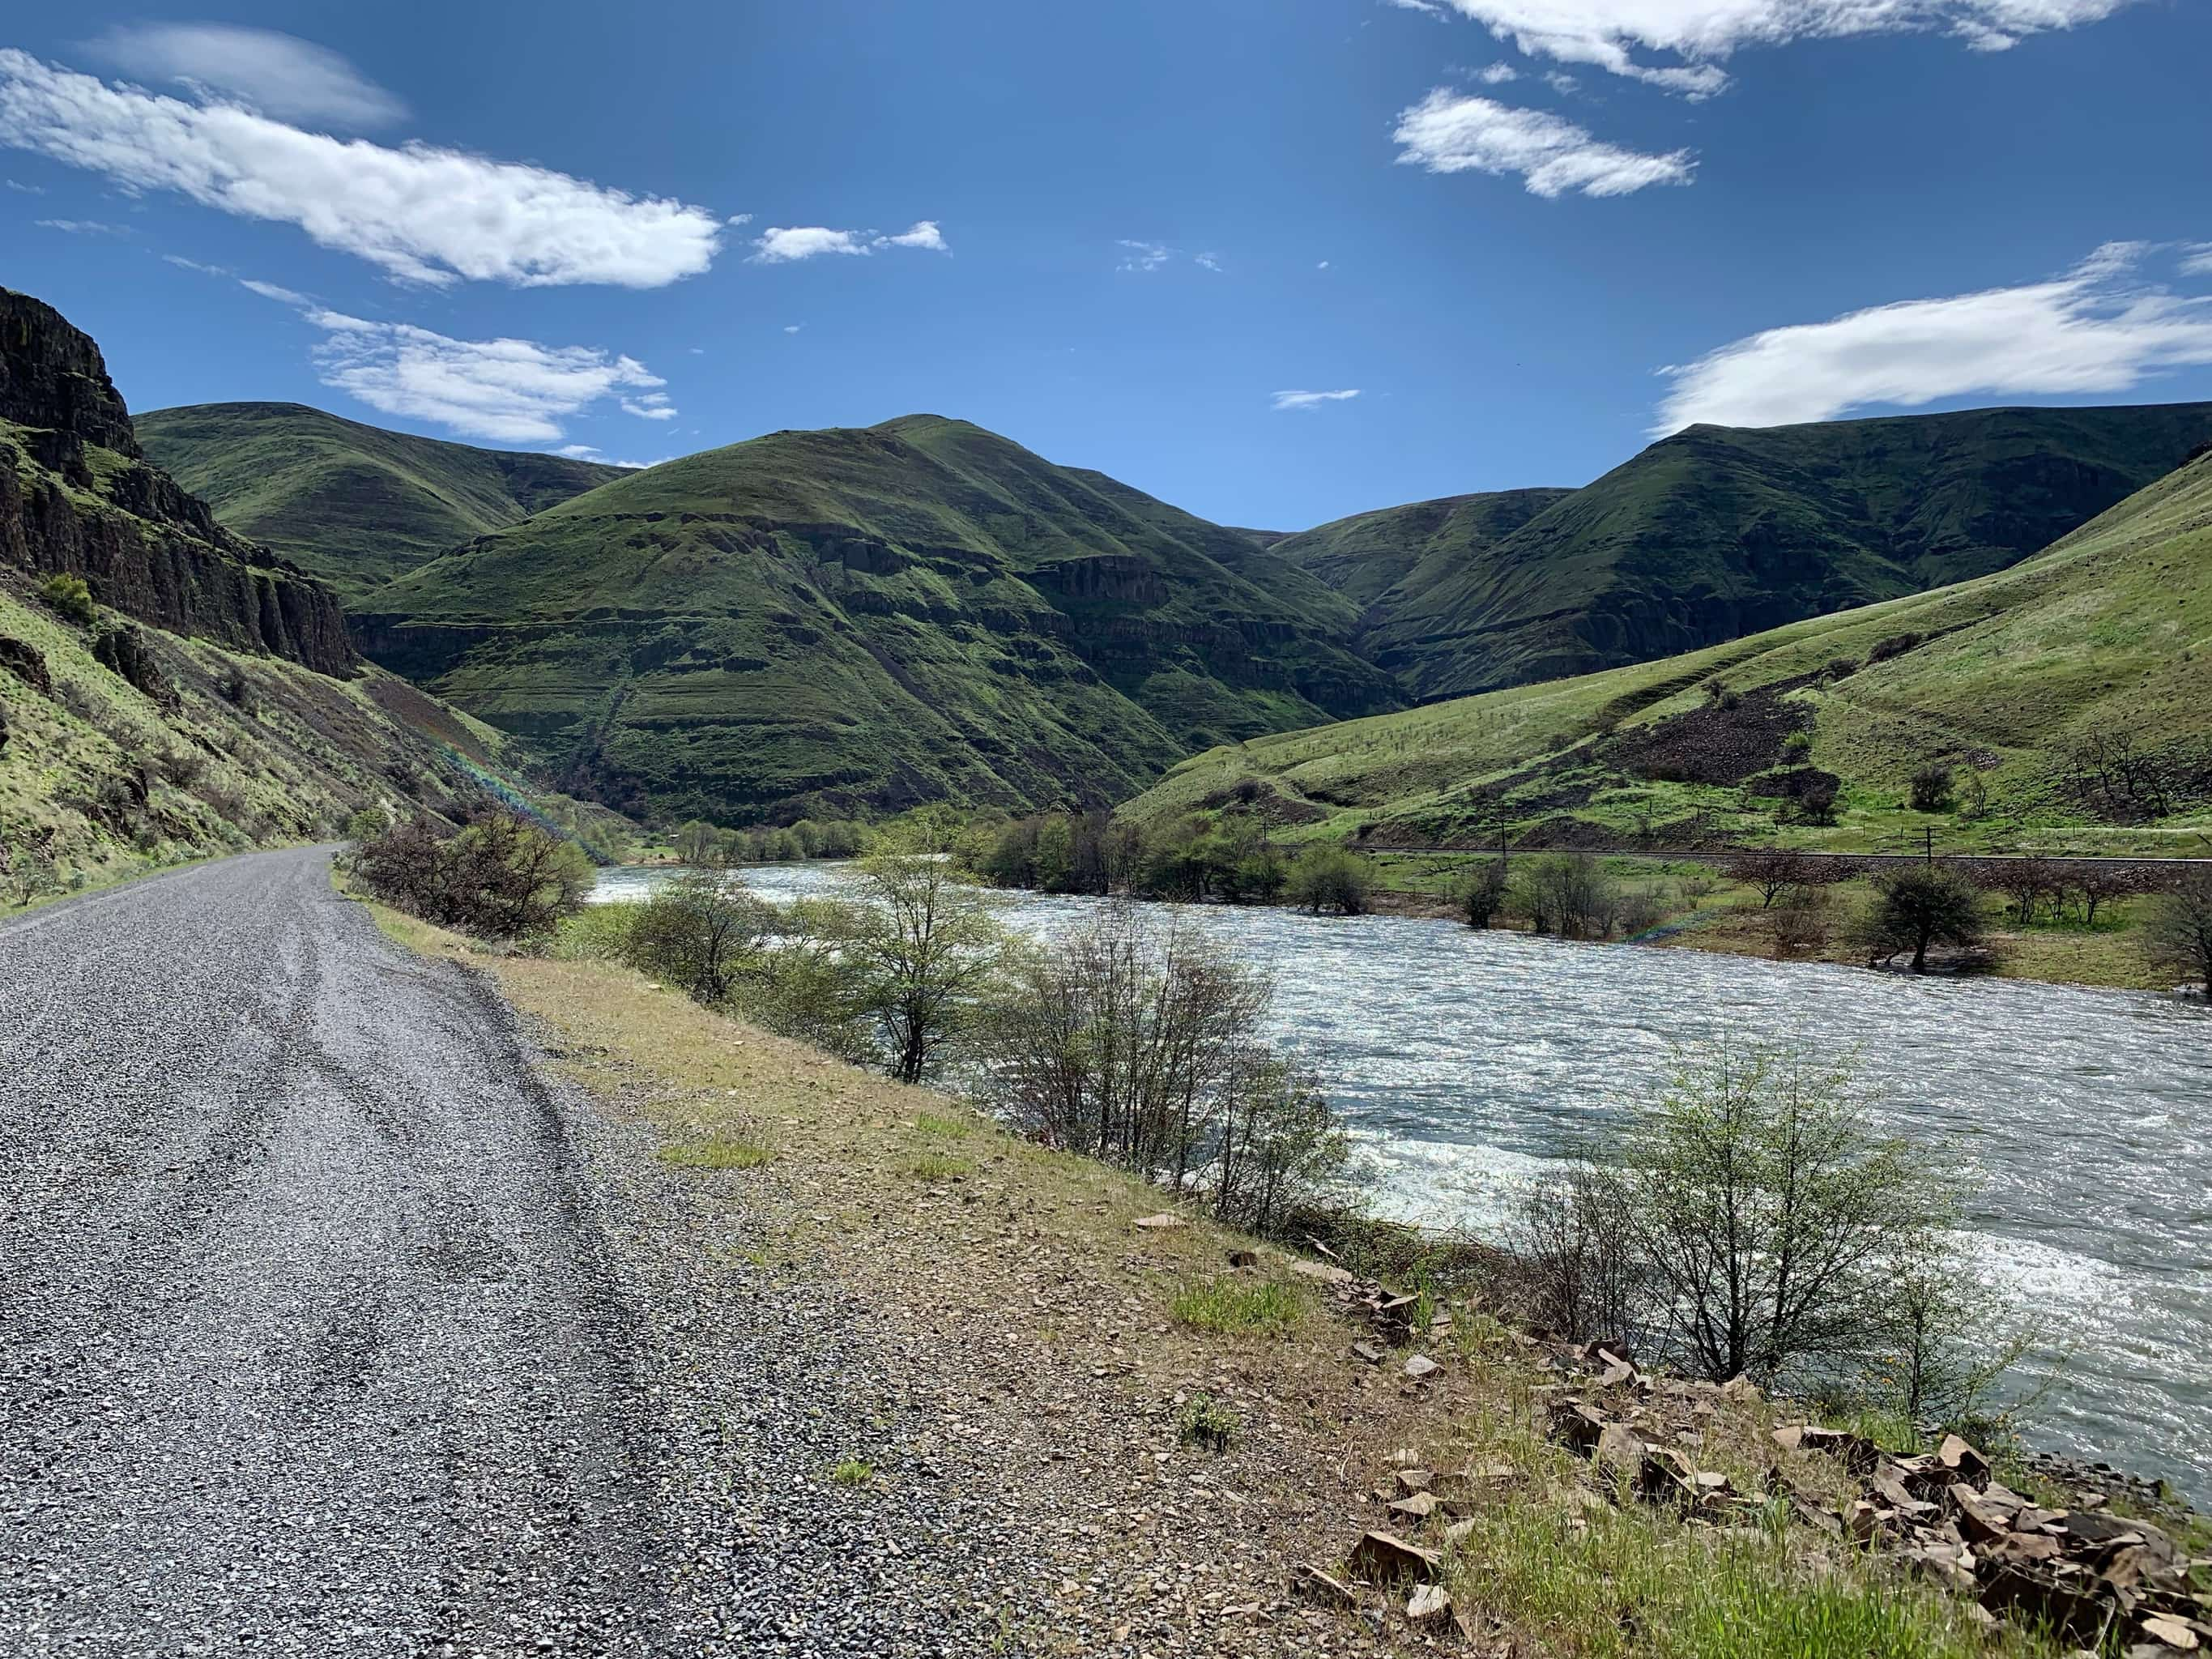 Gravel road paralleling the lower Deschutes River near Maupin, Oregon.